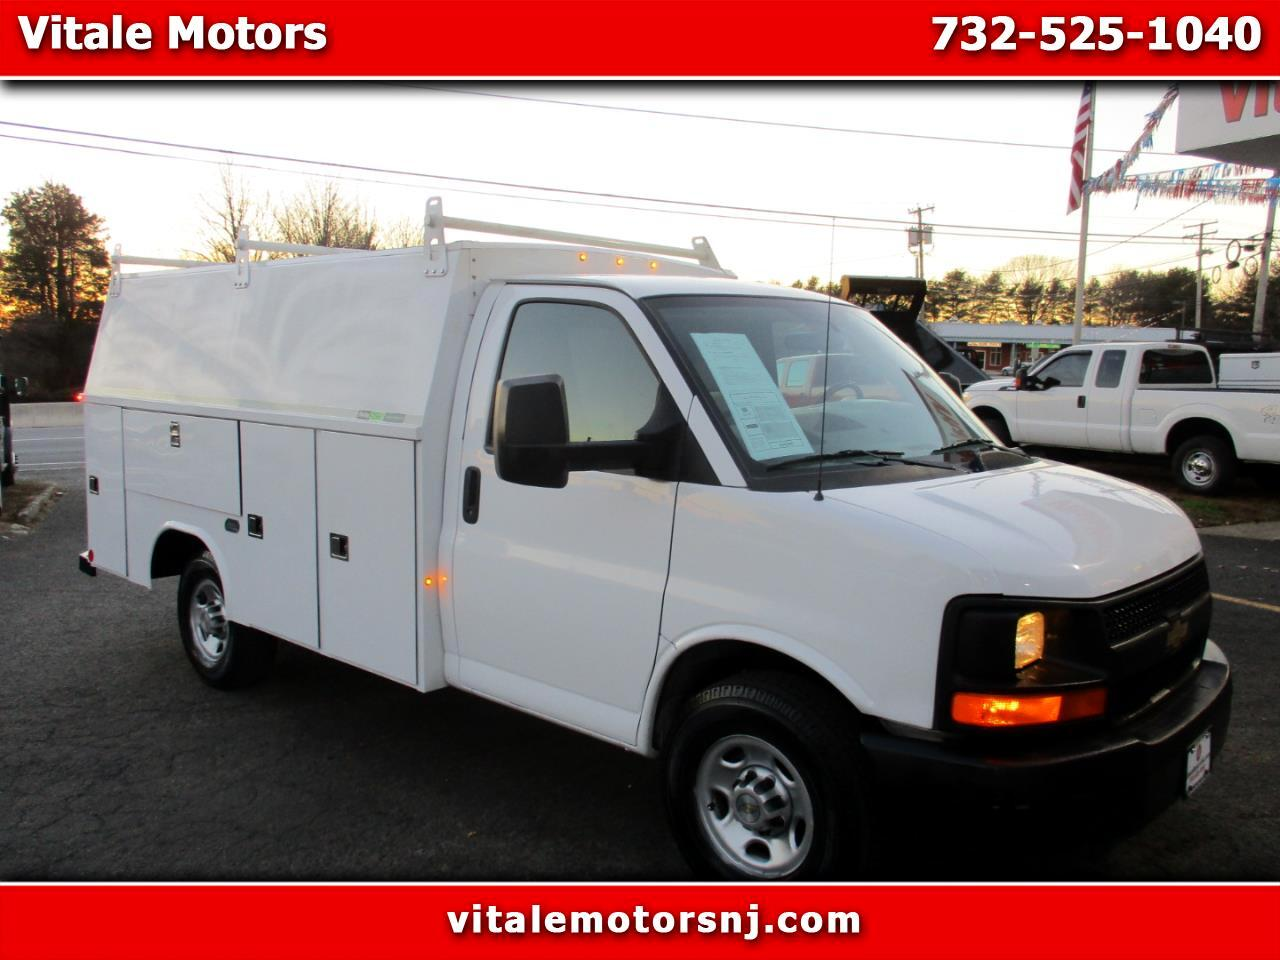 2013 Chevrolet Express G3500 ENCLOSED UYILITY BODY